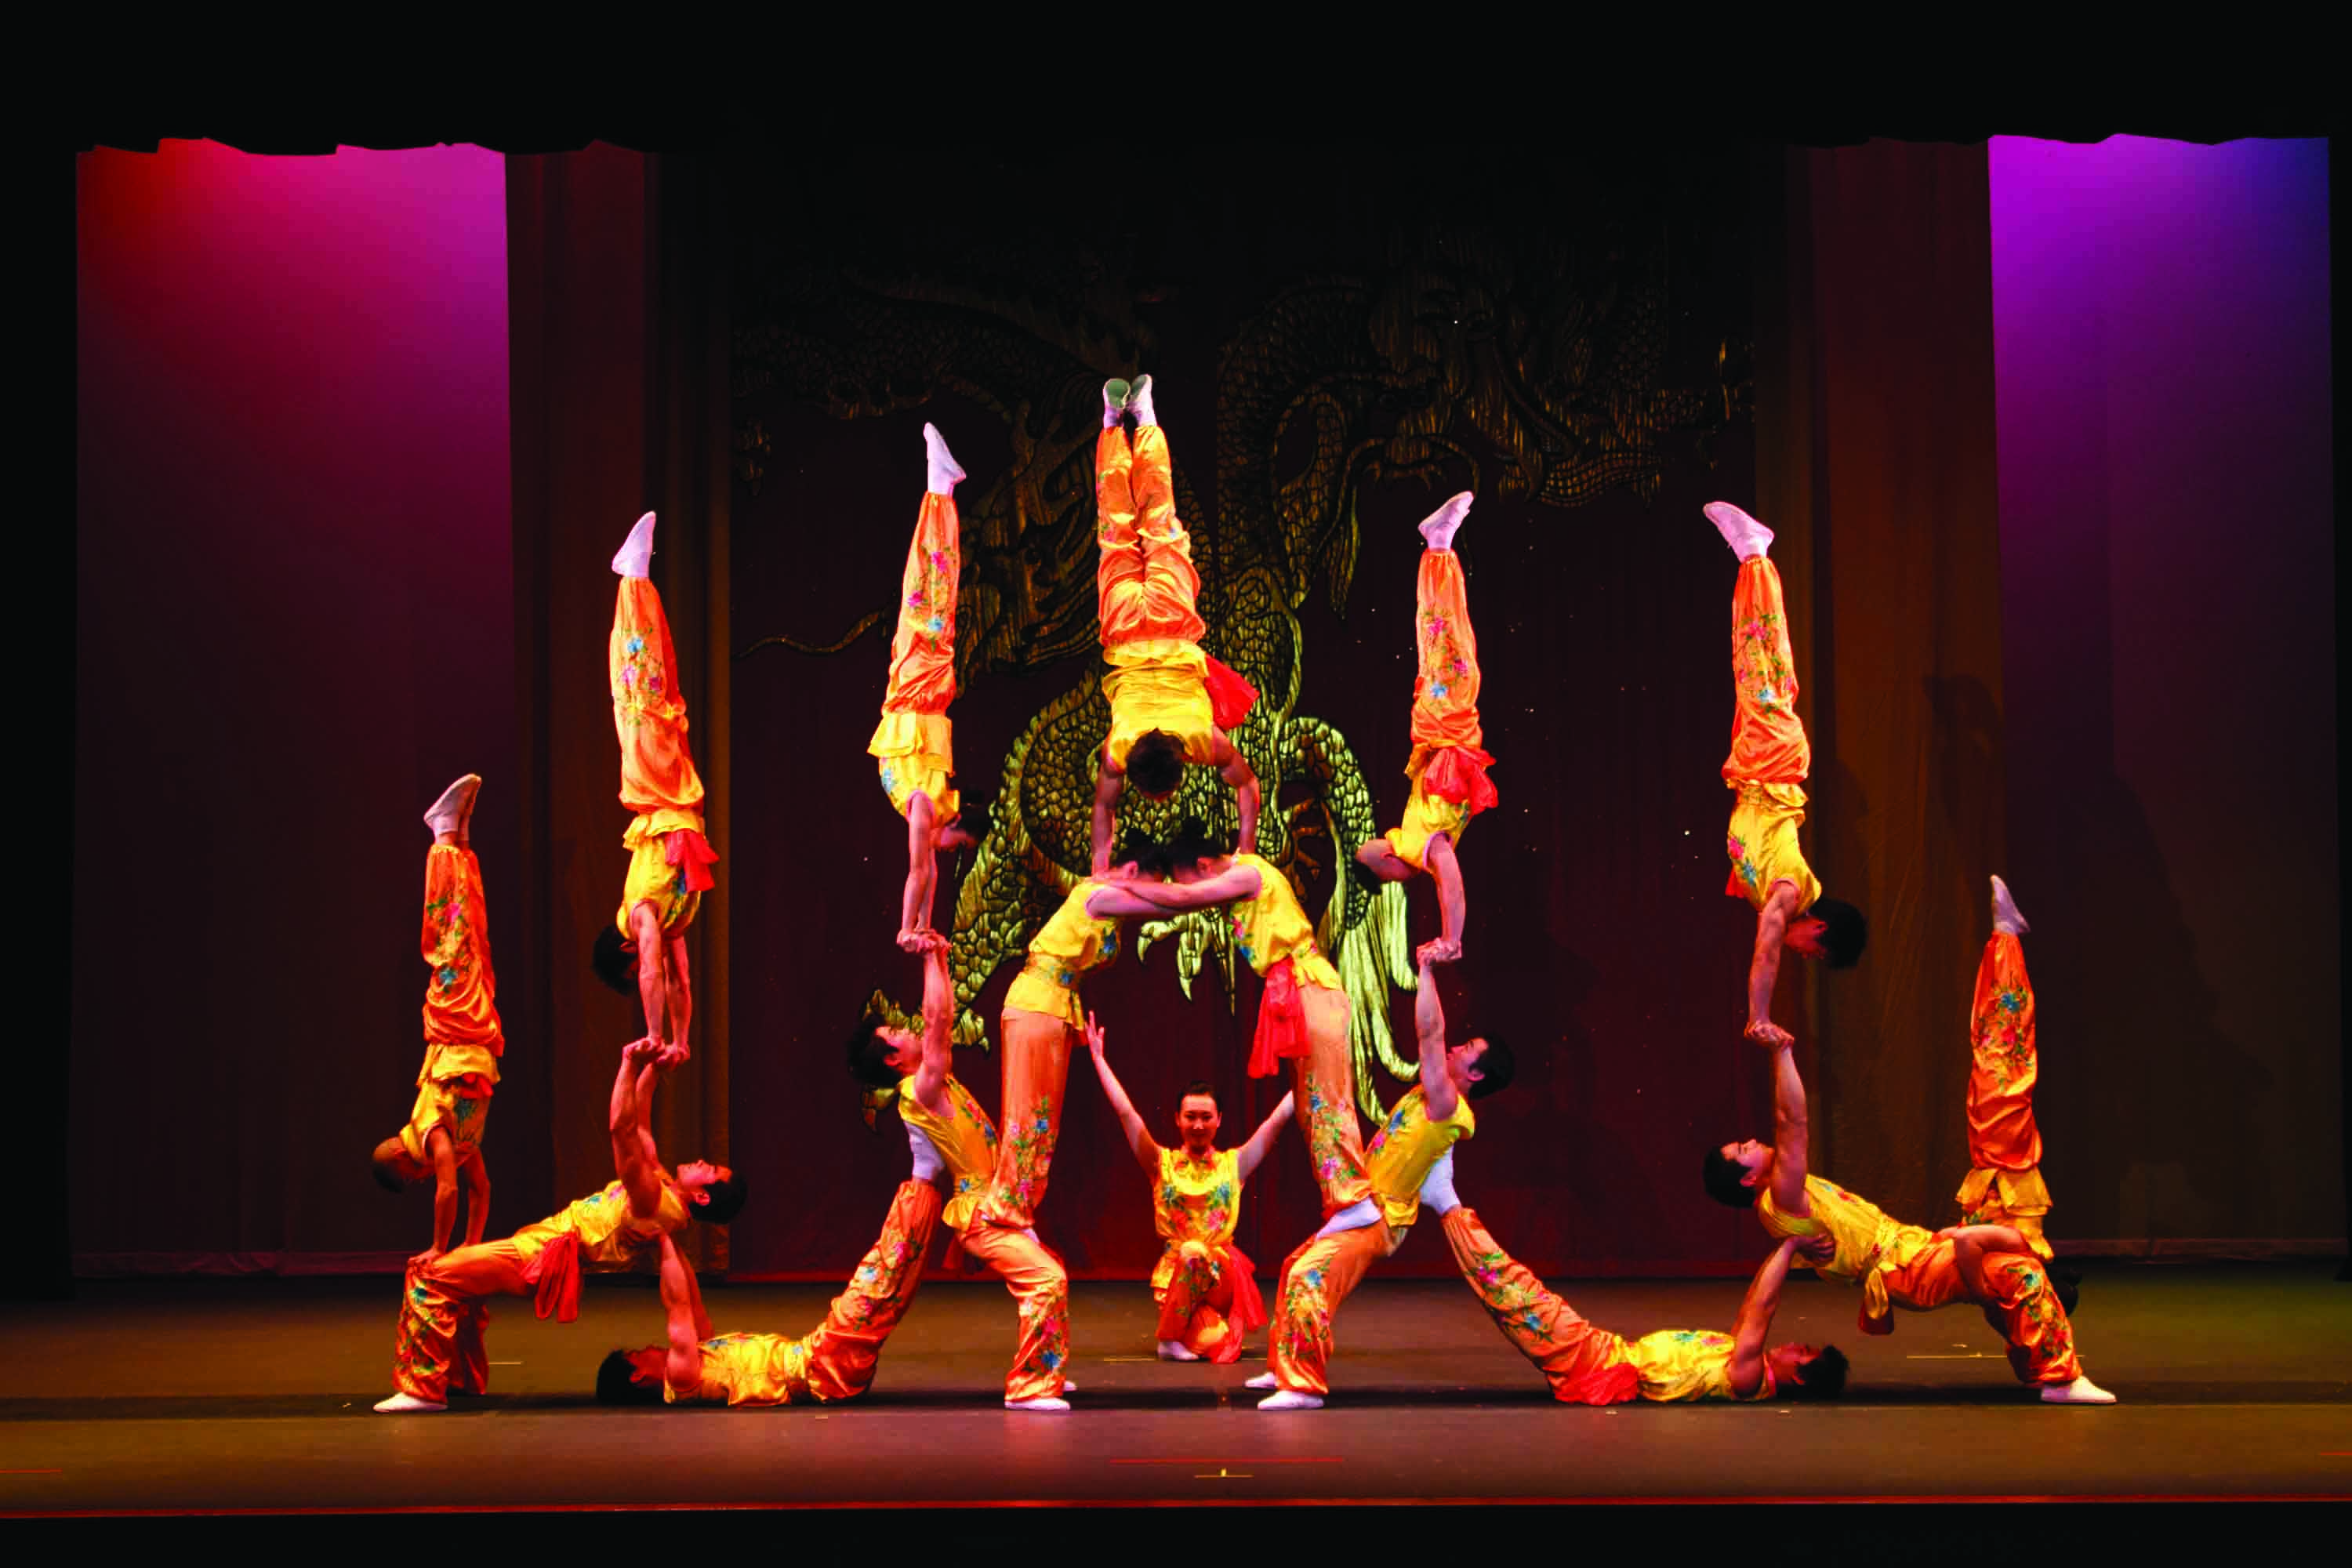 Peking Acrobats To Present Daring Acts On Feb 10 Goshen